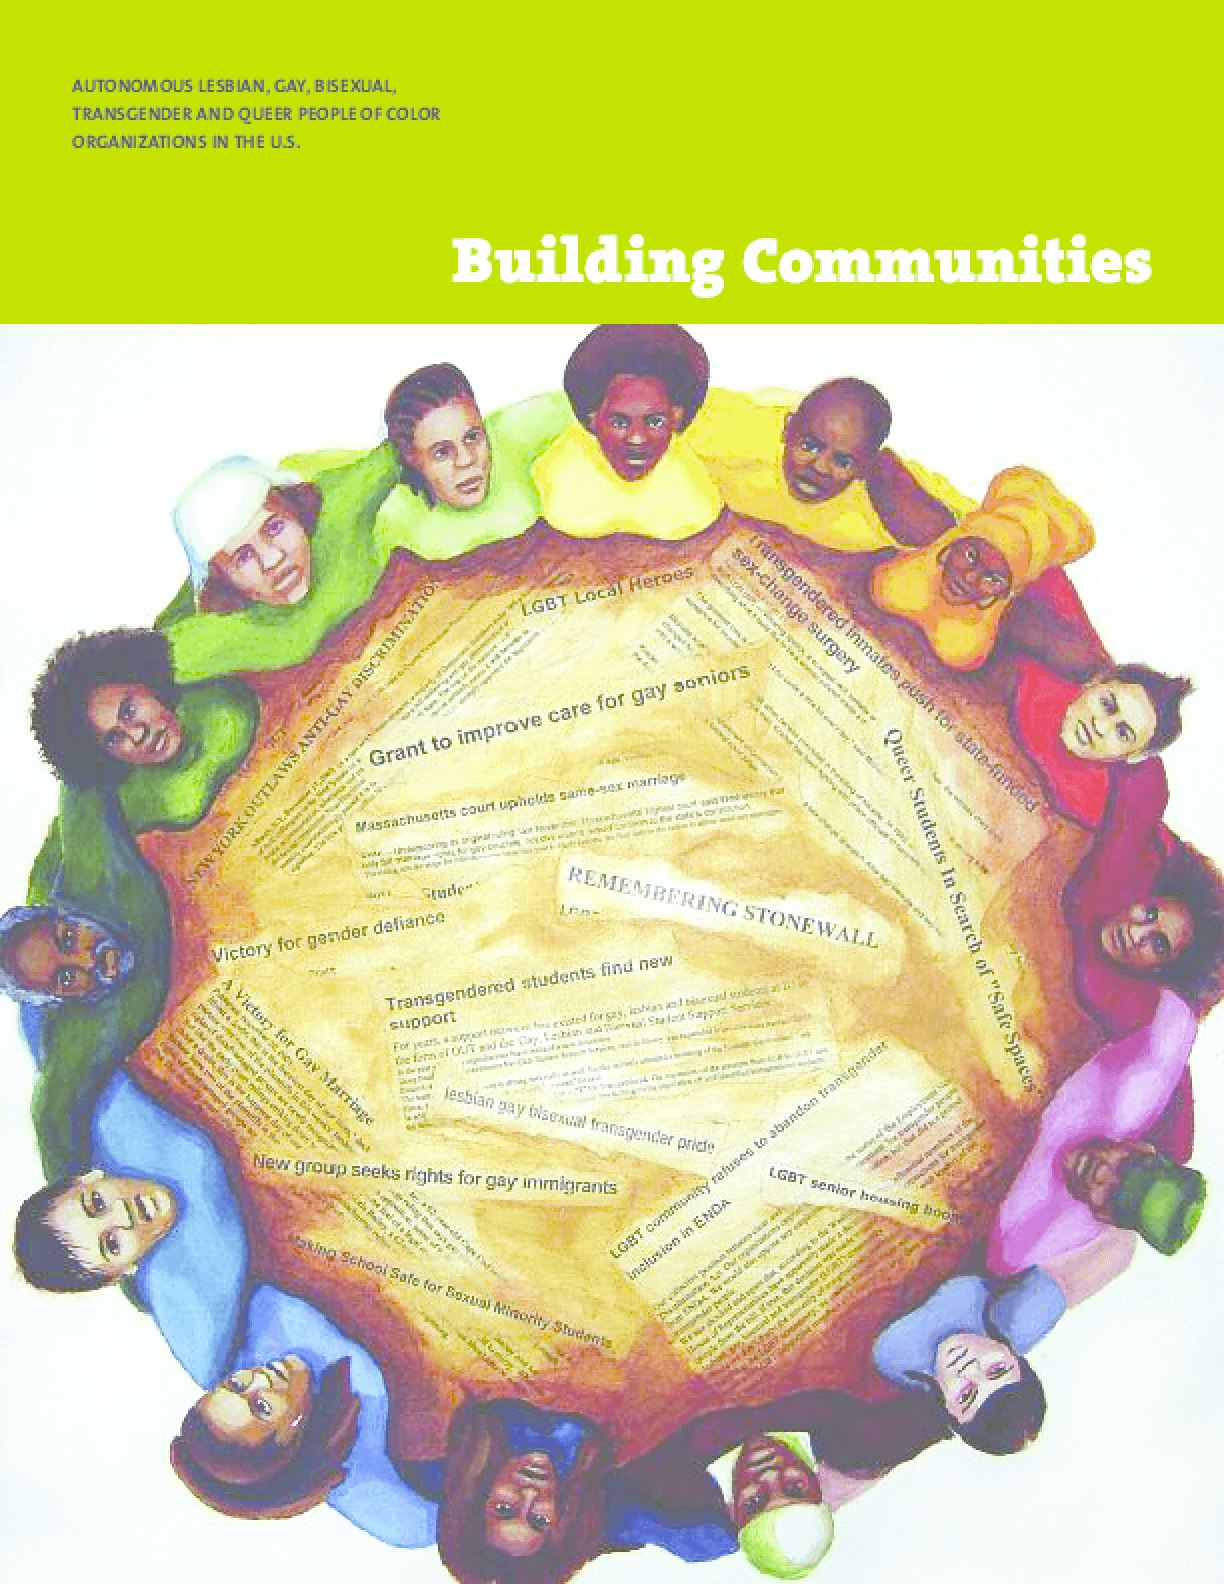 Building Communities: Autonomous LGBTQ People of Color Organizations in the U.S.